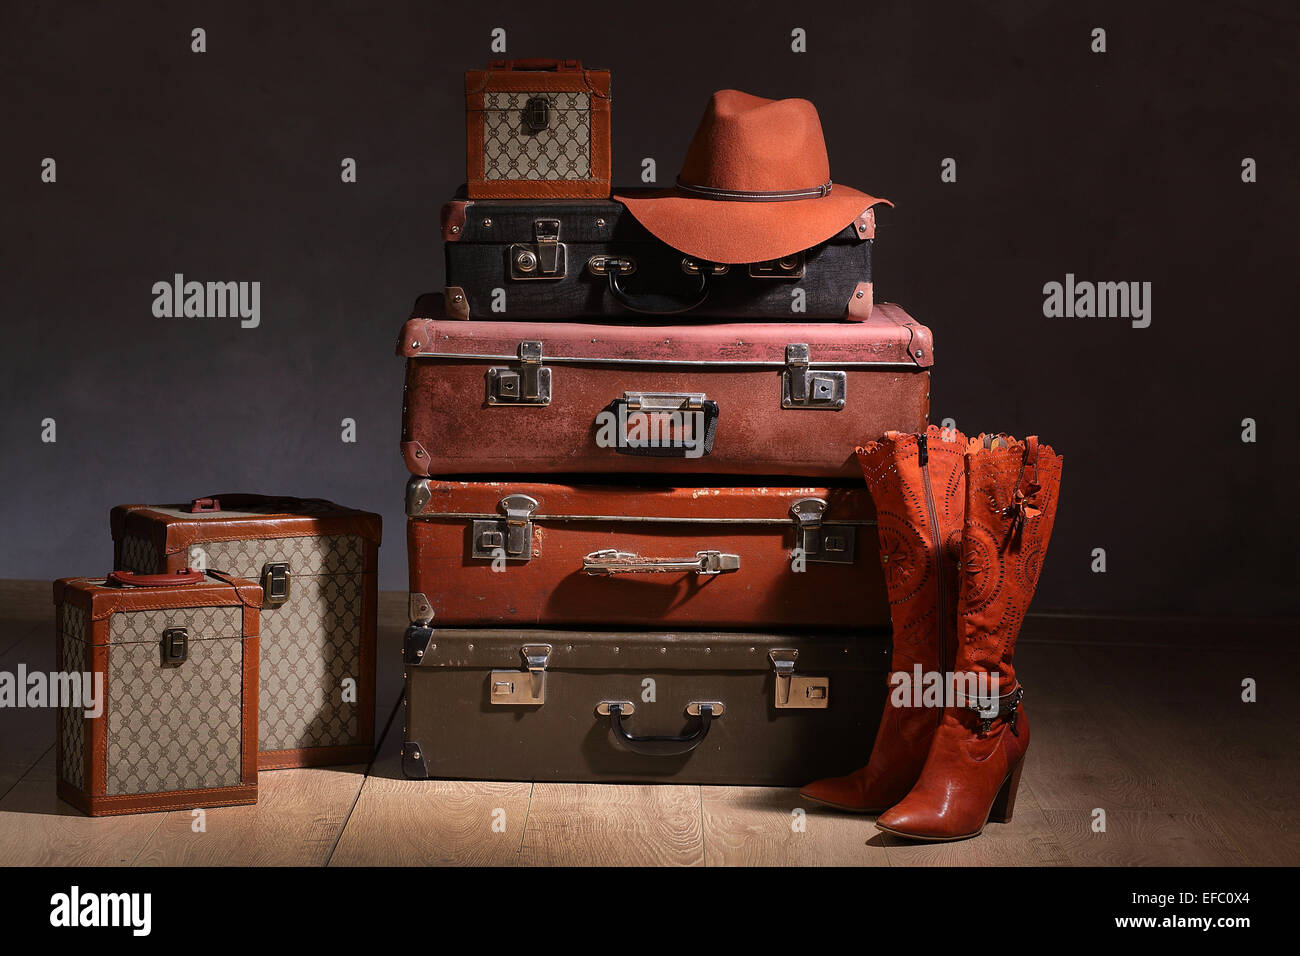 props, stuff, suitcase, bag, hat, rarity, antique, pipe - Stock Image